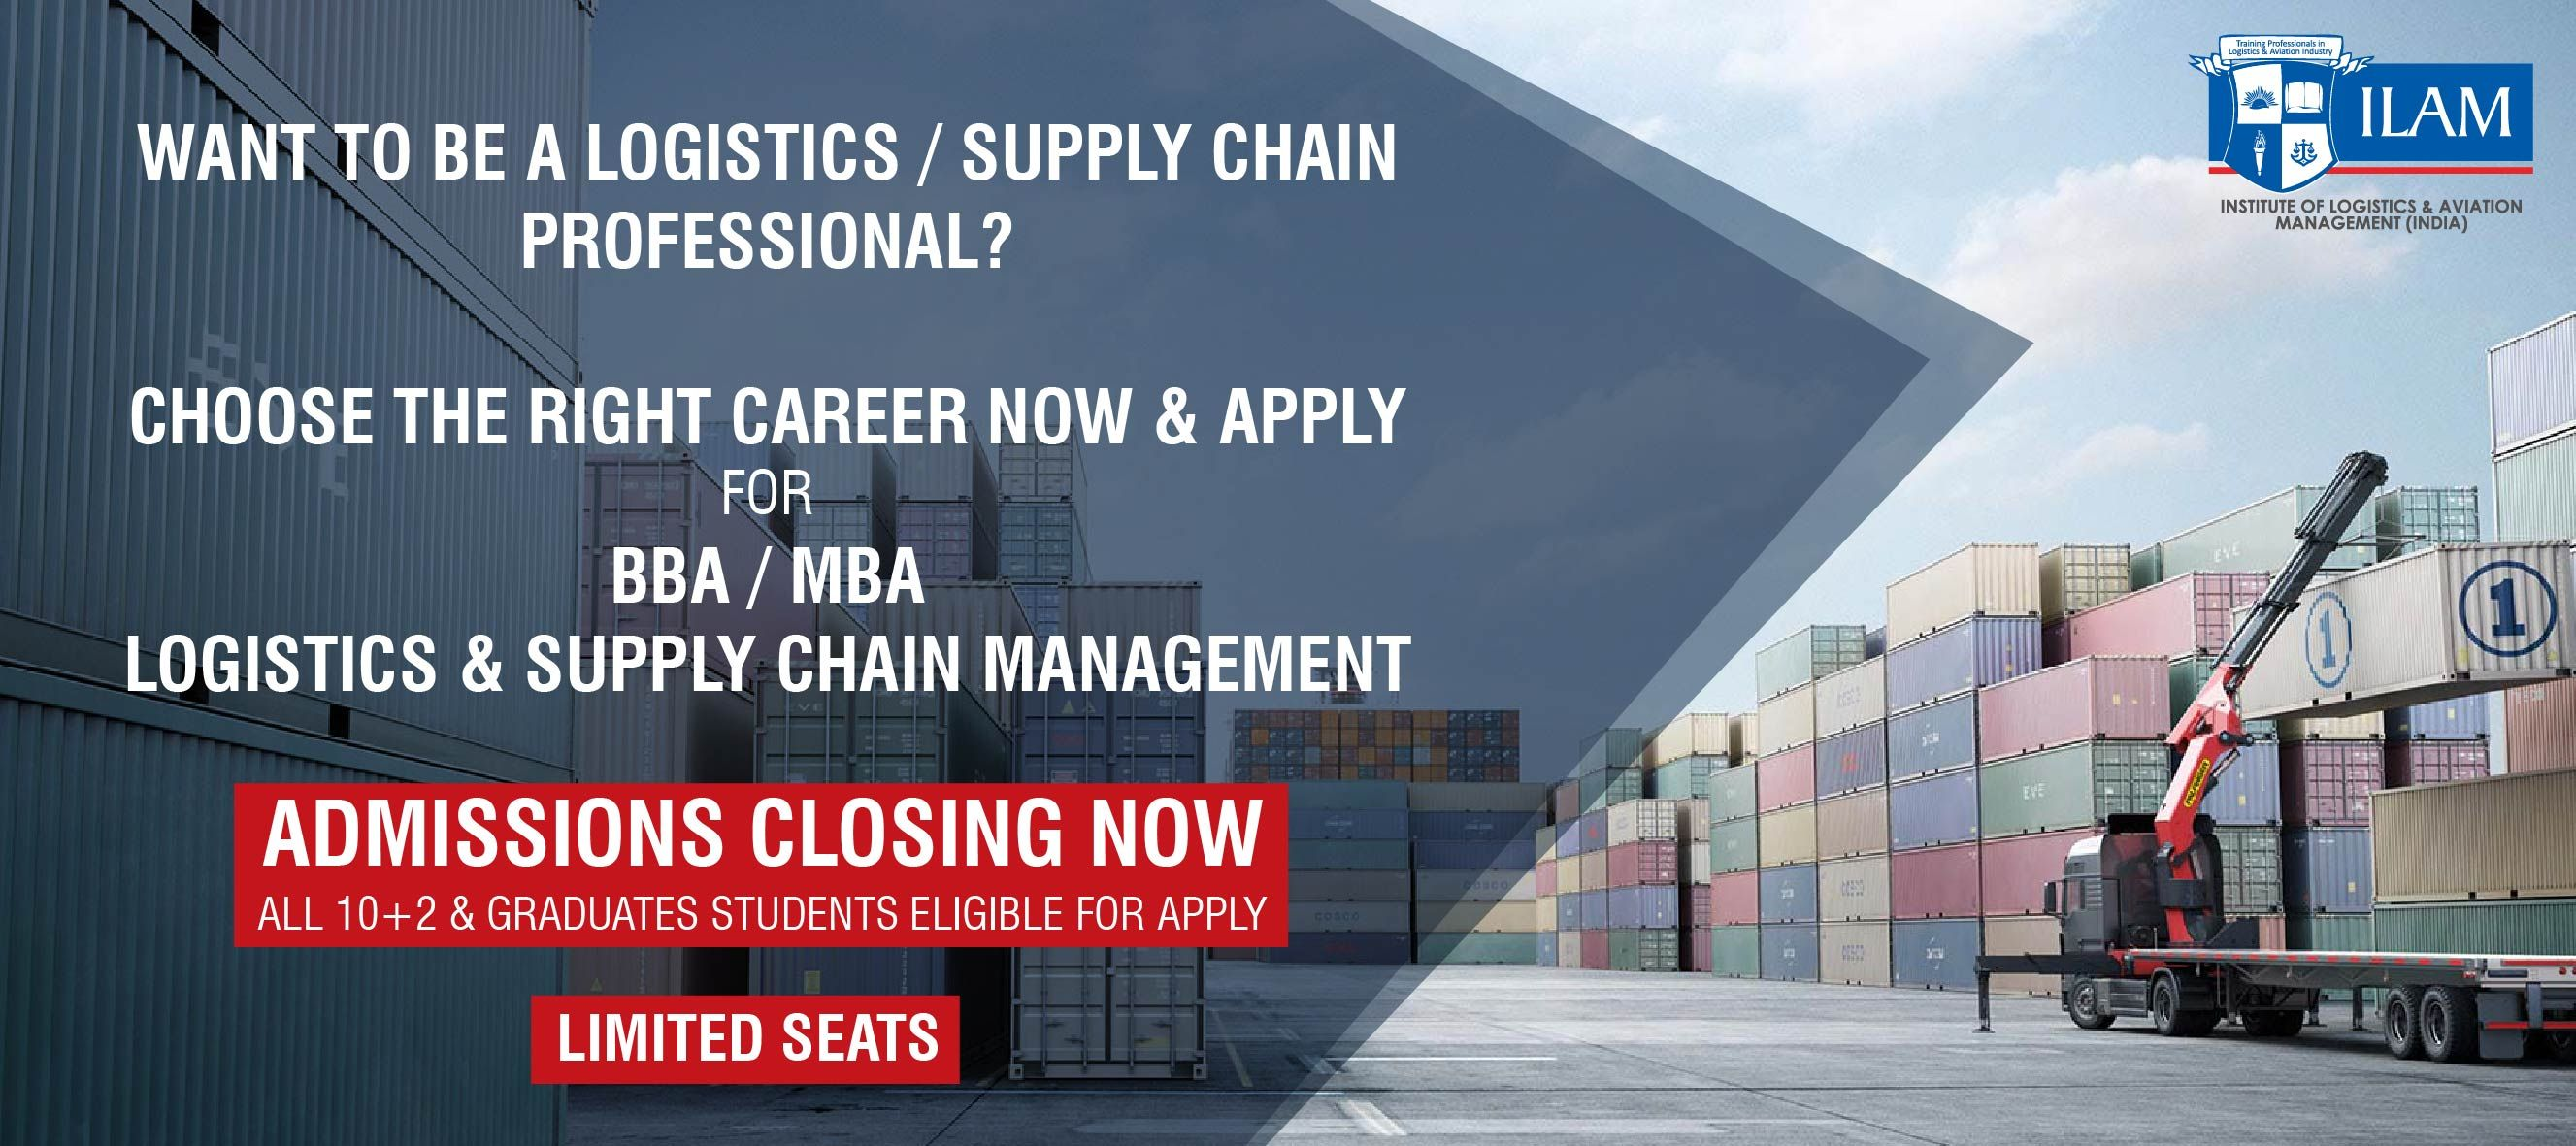 Join The In Demand Logistics Industry Admissions Closing Now For